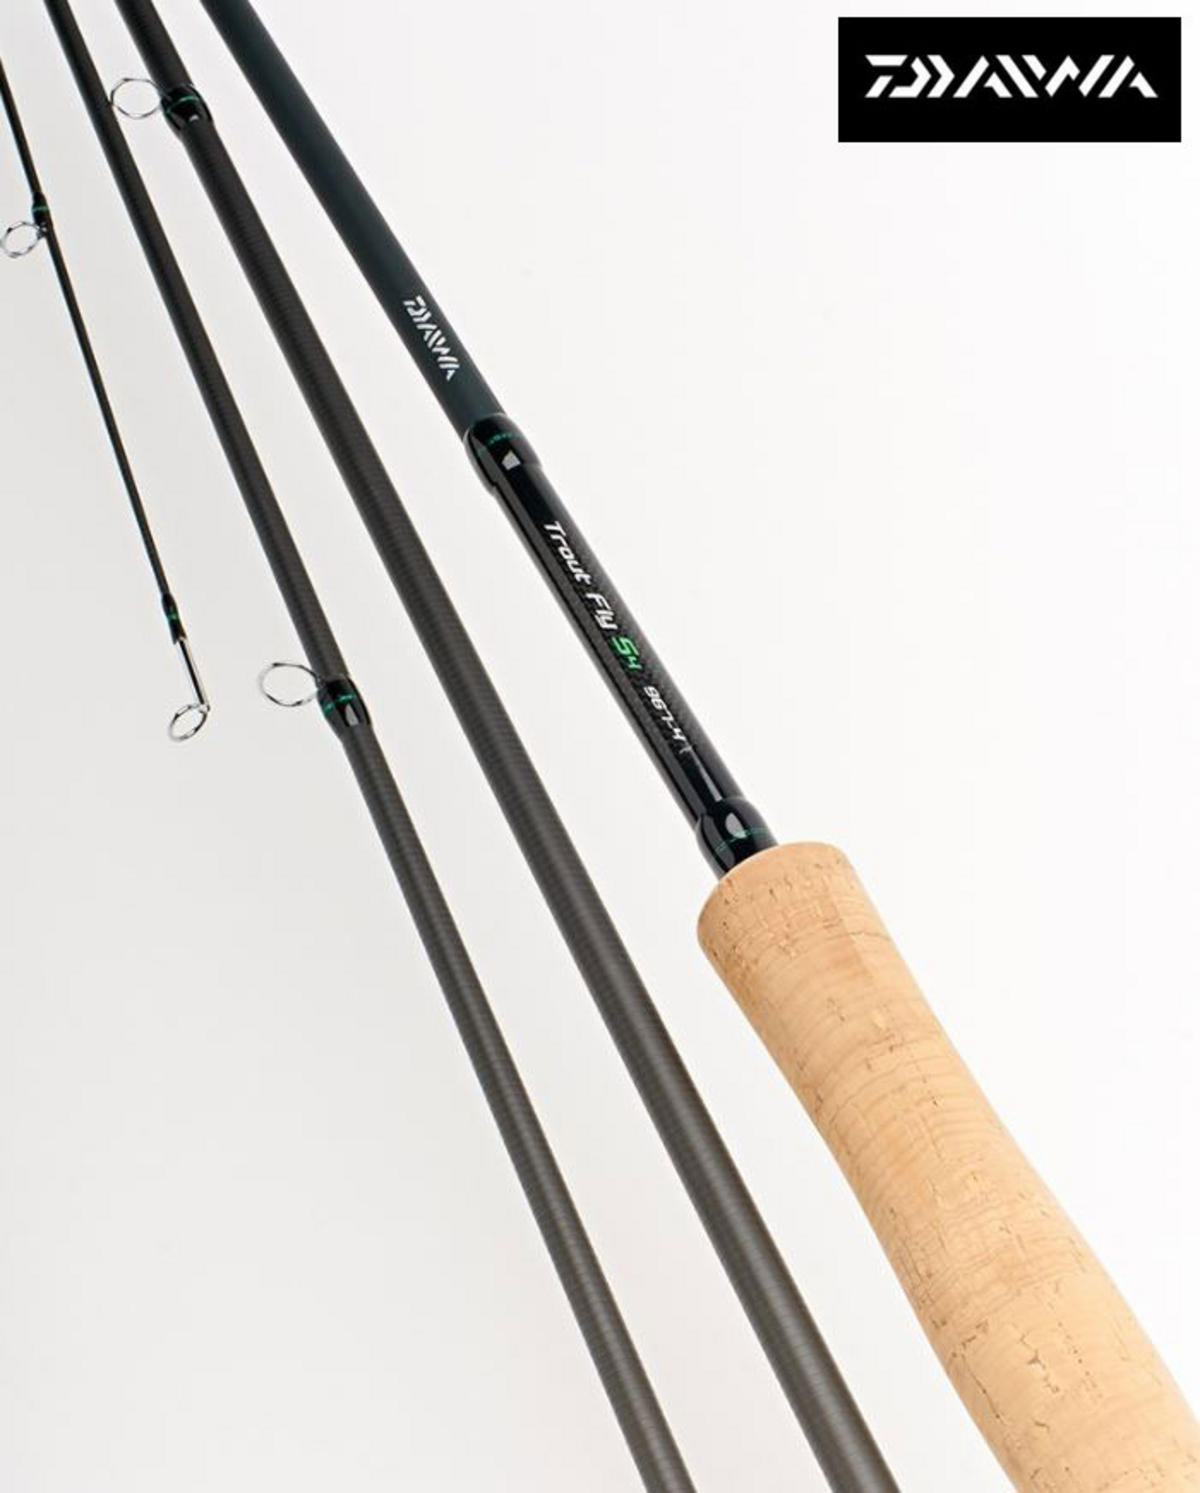 New Daiwa D Trout S4 Fly Fishing Rods - All Models Available